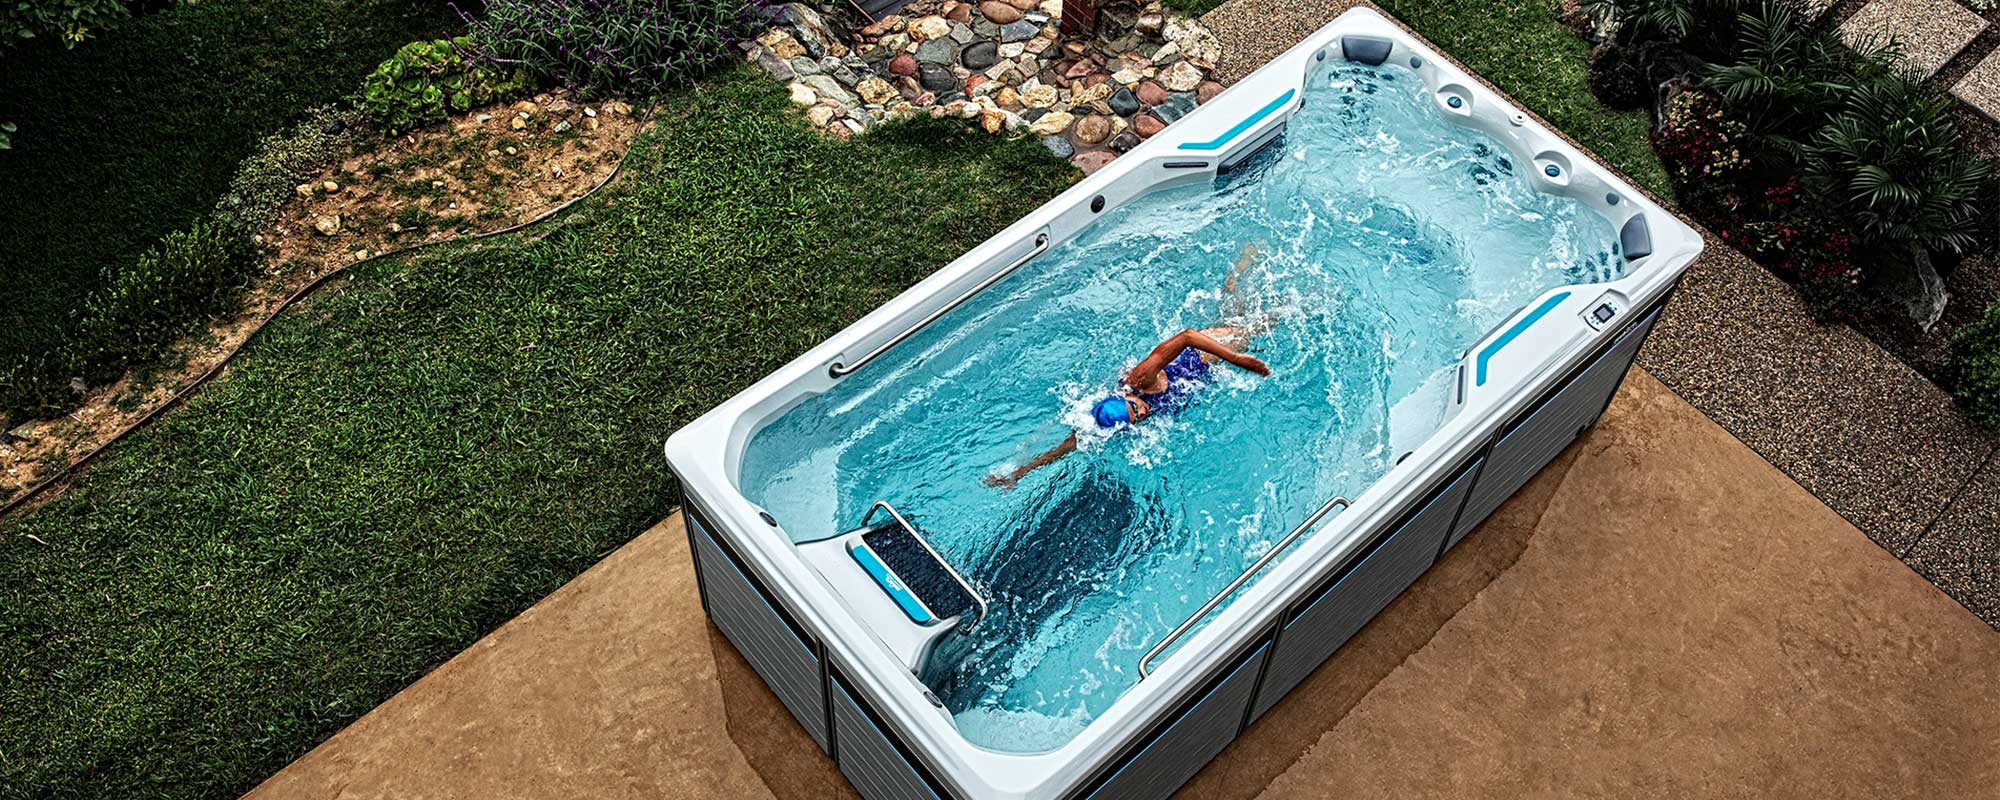 Jacuzzi Endless Pool Endless Pool Repair Aqua Vita Spas